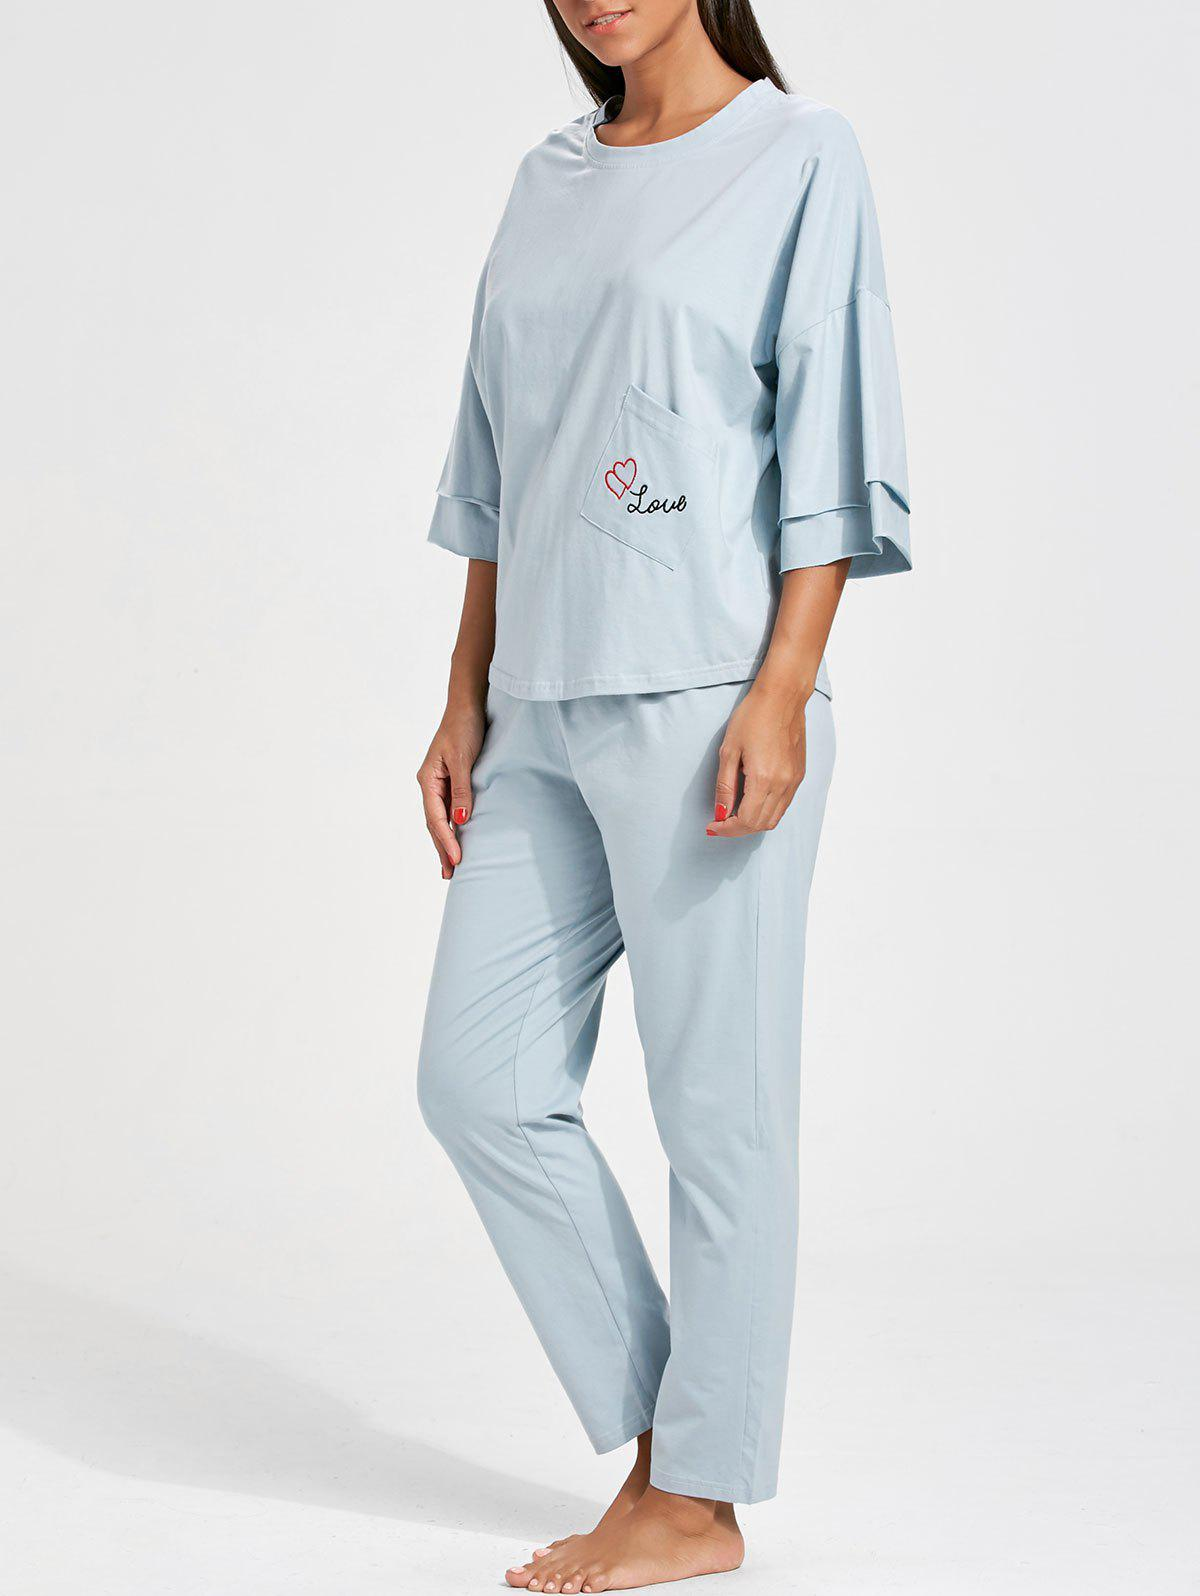 Batwing Sleeve Pajamas Set with Pocket - CLOUDY M